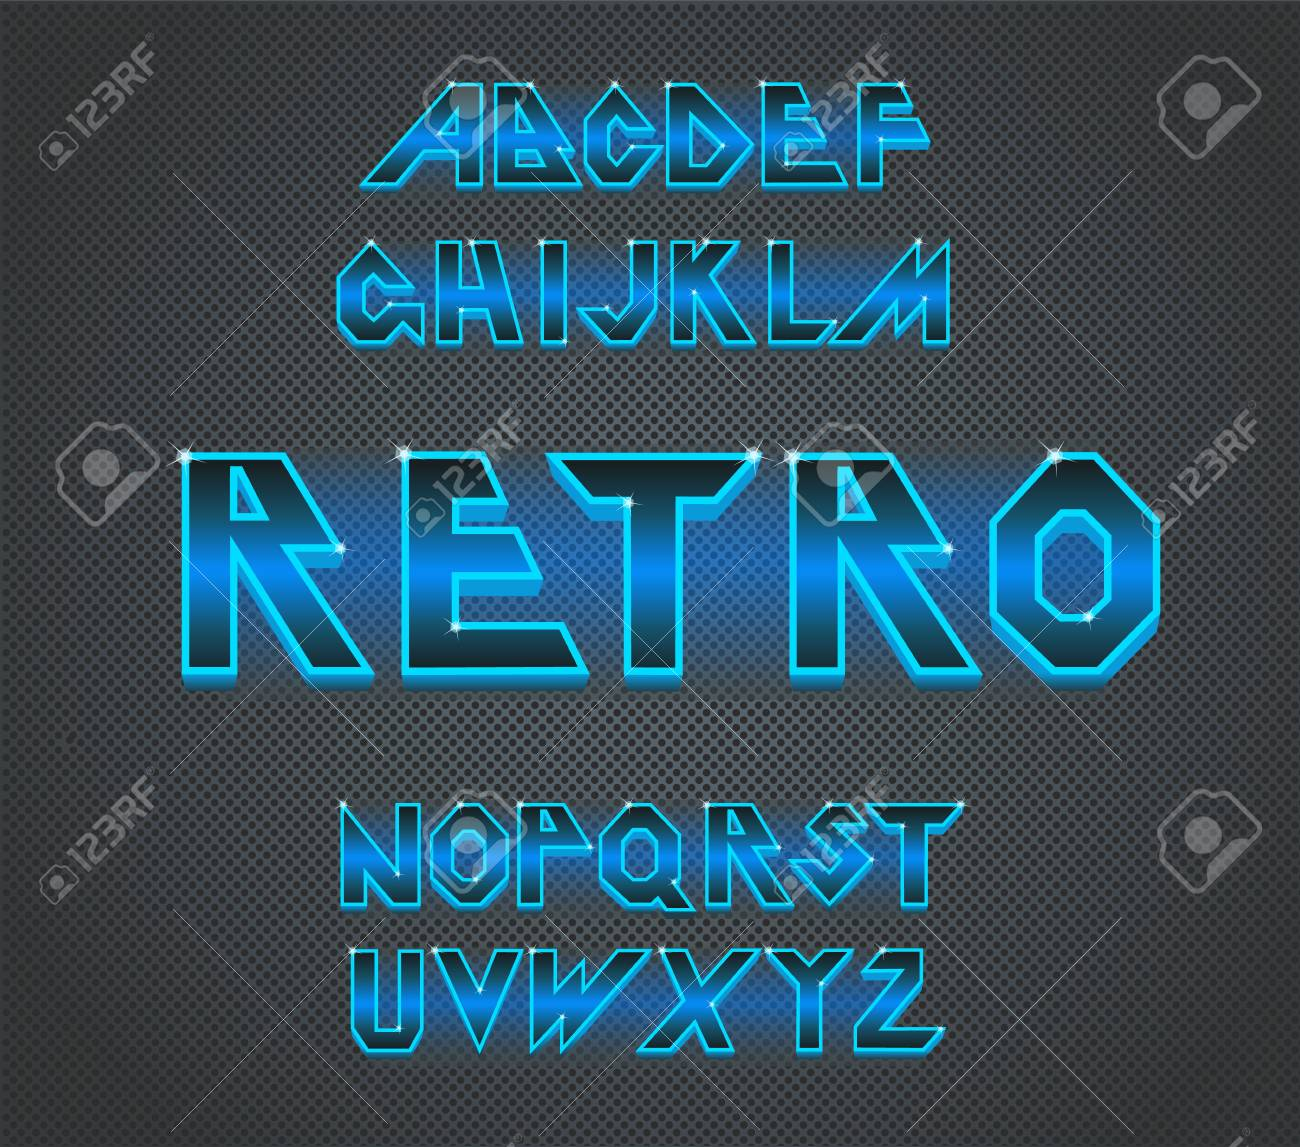 80 s retro font Vector typography for flyers,headlines, posters Effect